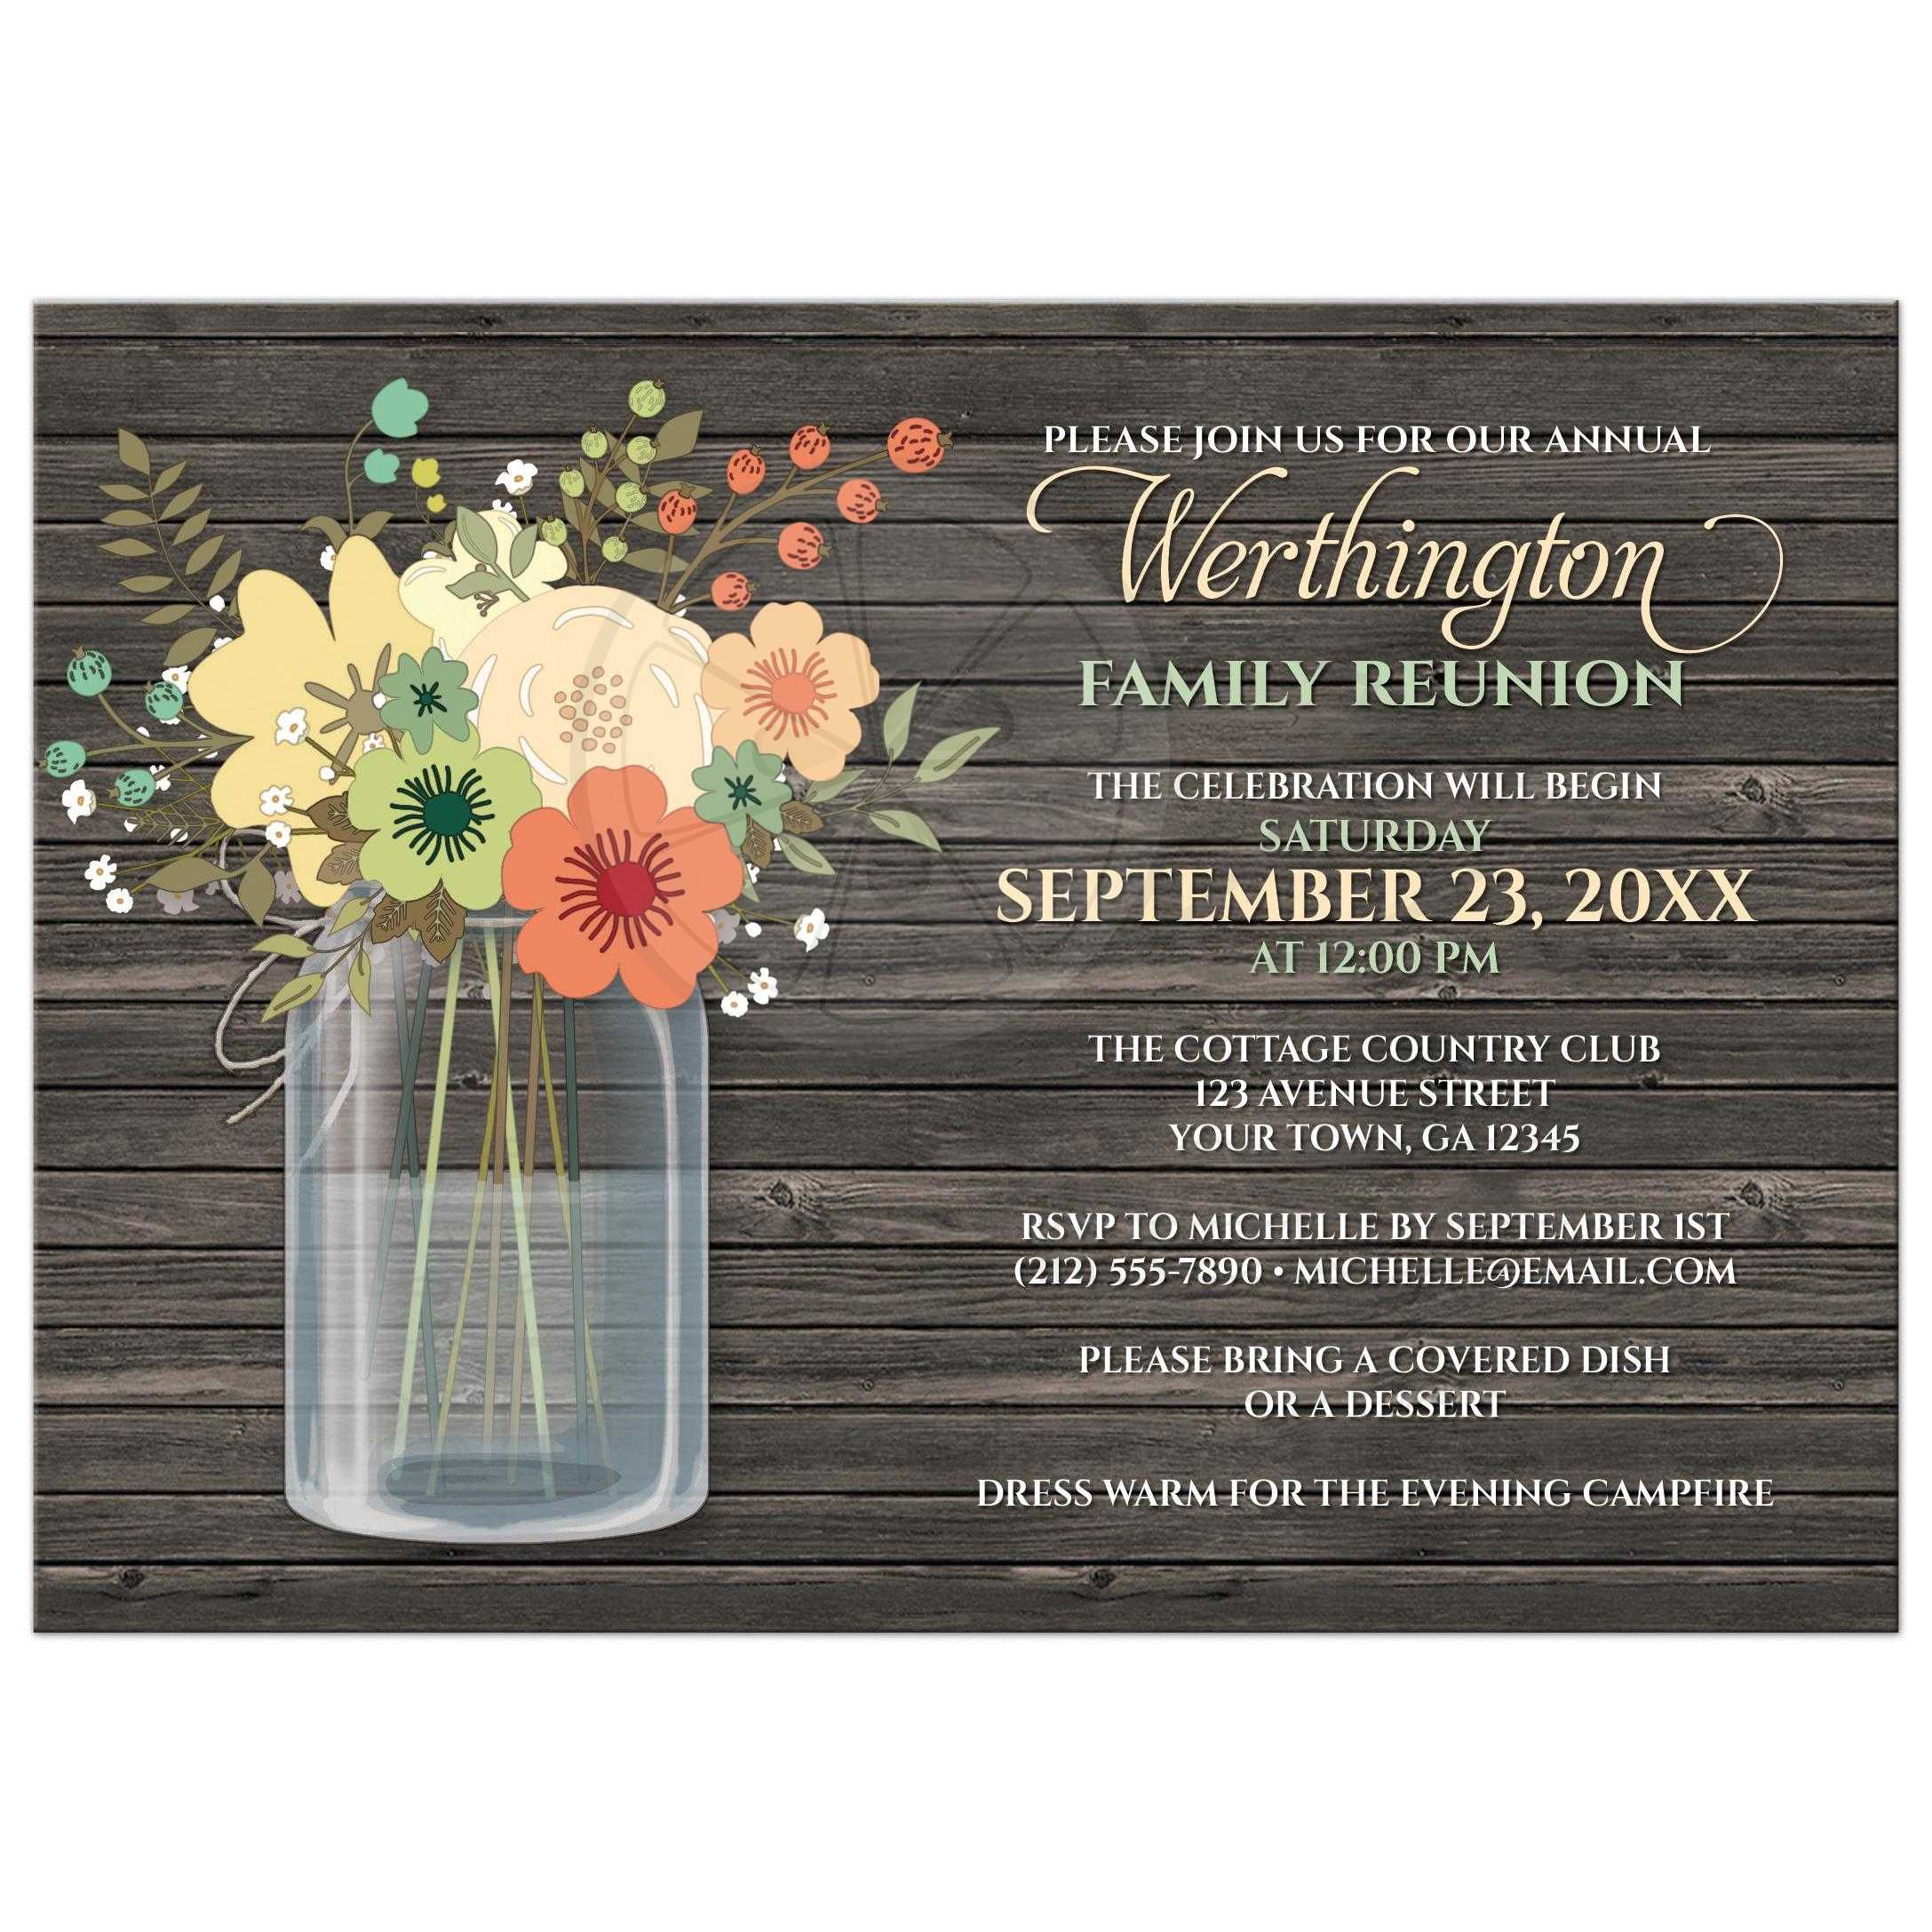 Beautiful Family Reunion Invitations   Rustic Floral Wood Mason Jar  Invitations For Family Reunion